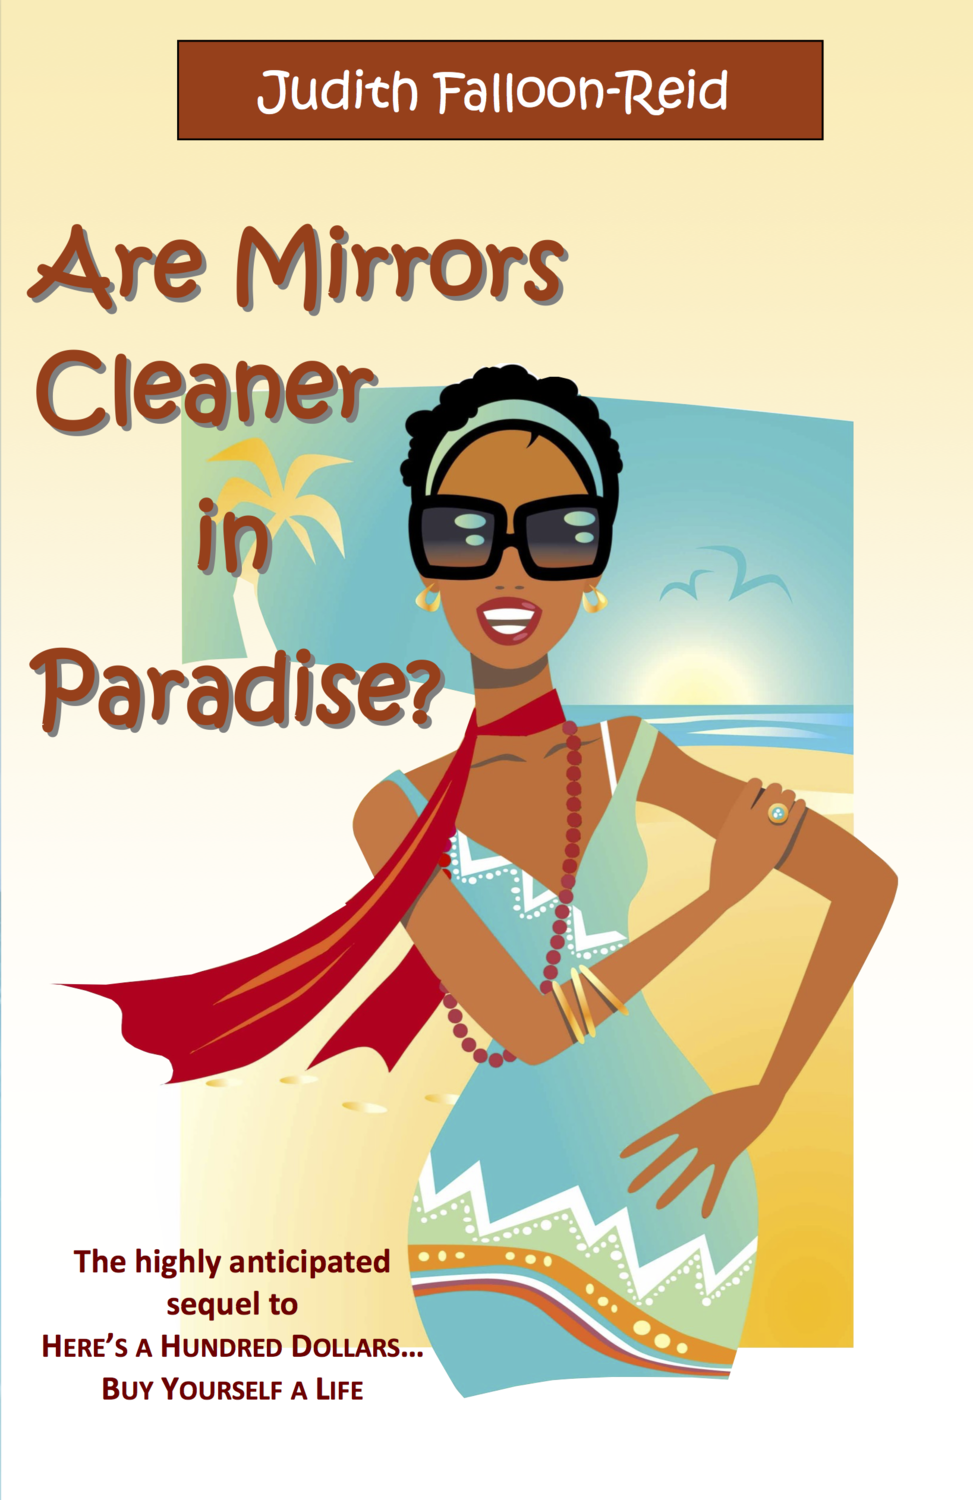 Are Mirrors. Cleaner in paradise?